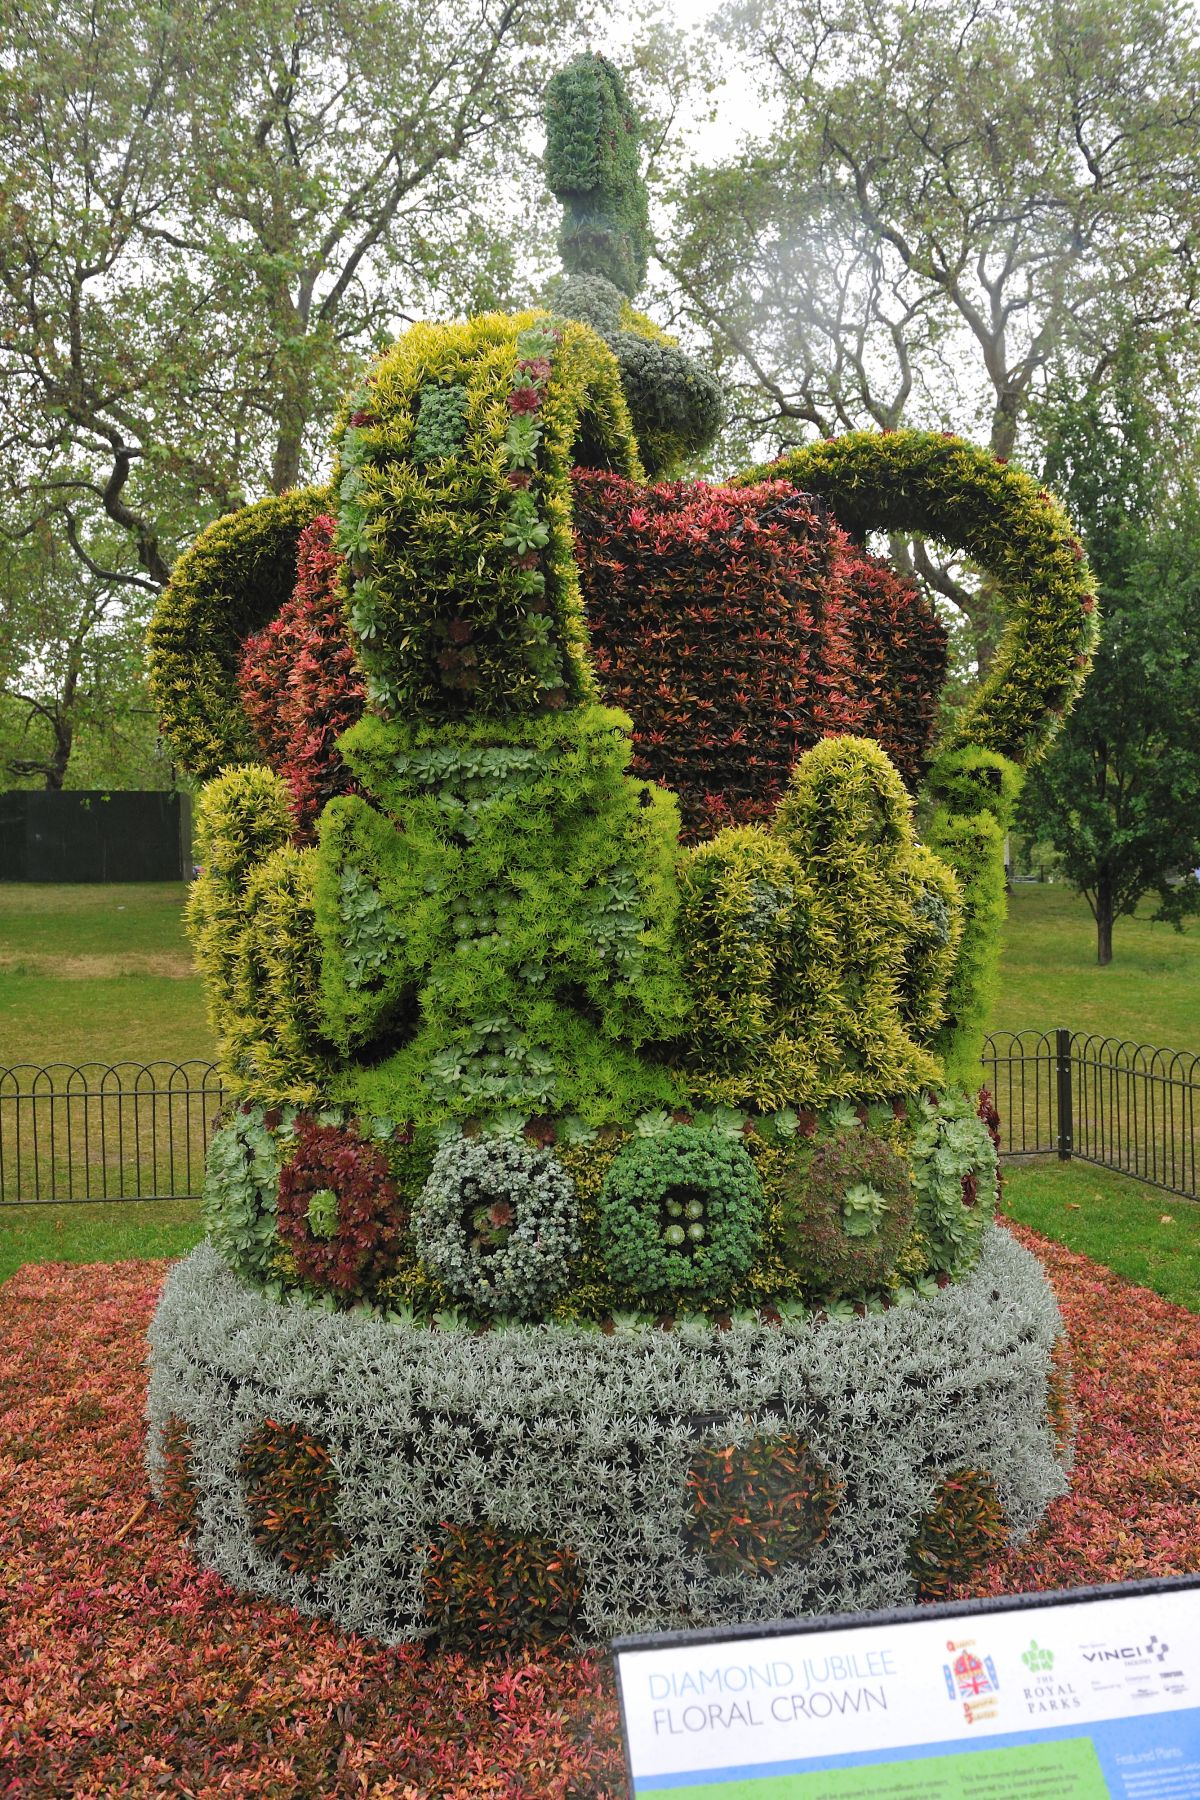 Decorations to mark the Diamond Jubilee were of all kinds, as demonstrated by this floral crown seen in St-James Park, next to Buckingham Palace.